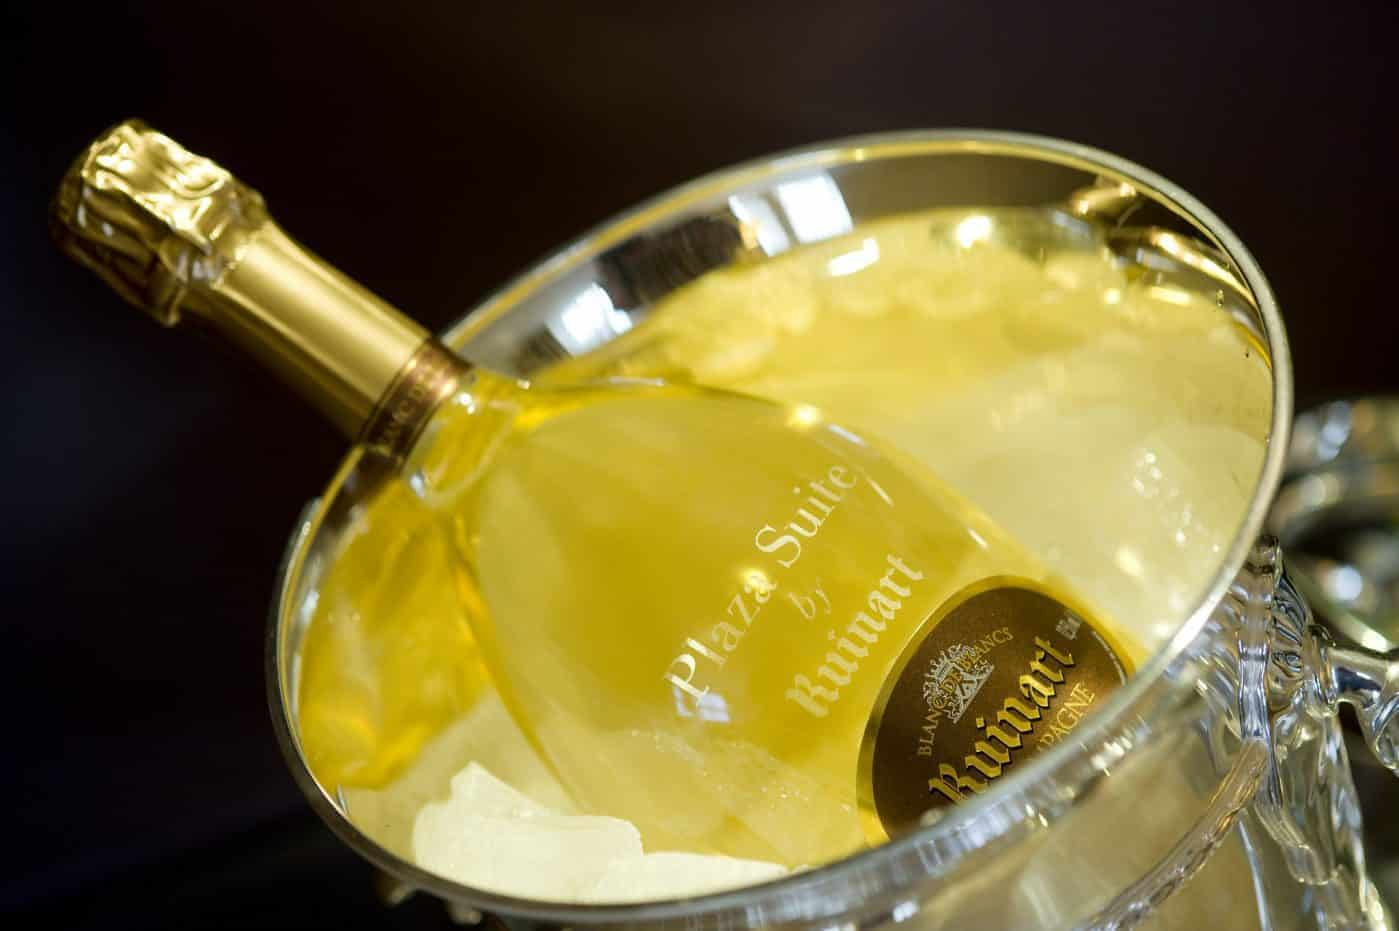 Ruinart champagne on ice